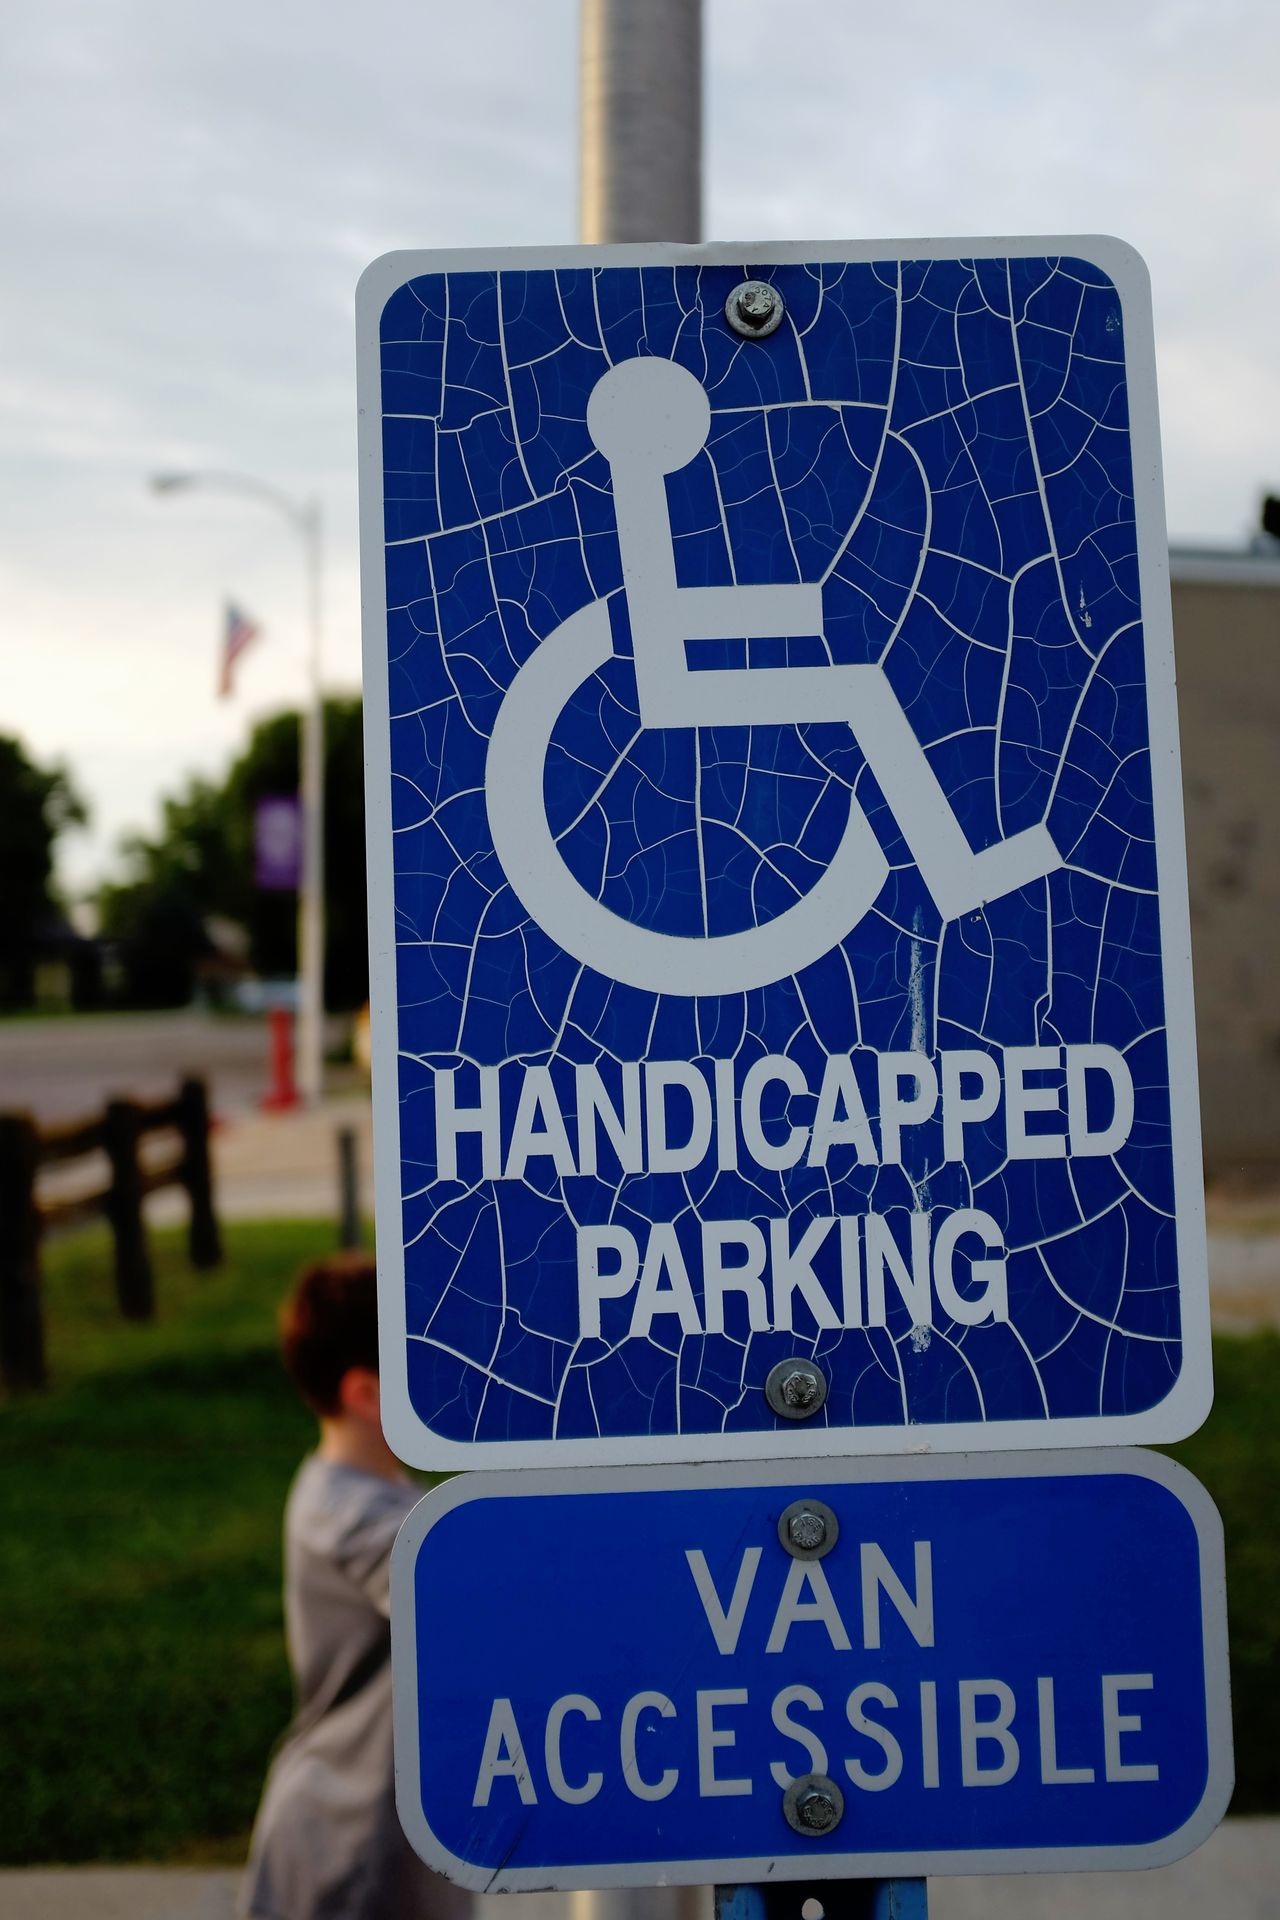 Photo essay, a day in the life. August 24, 2016 Milligan Nebraska 35mm Camera A Day In The Life American Blue Color Camera Work Color Palette Cracked Paint Details Everyday Lives Eye For Photography EyeEm Gallery Eyeemphoto Focus On Foreground FujiX100S Handicapped Parking Information Sign Outdoors Parking Patterns & Textures Photo Essay Small Town Stories Small Town USA Storytelling